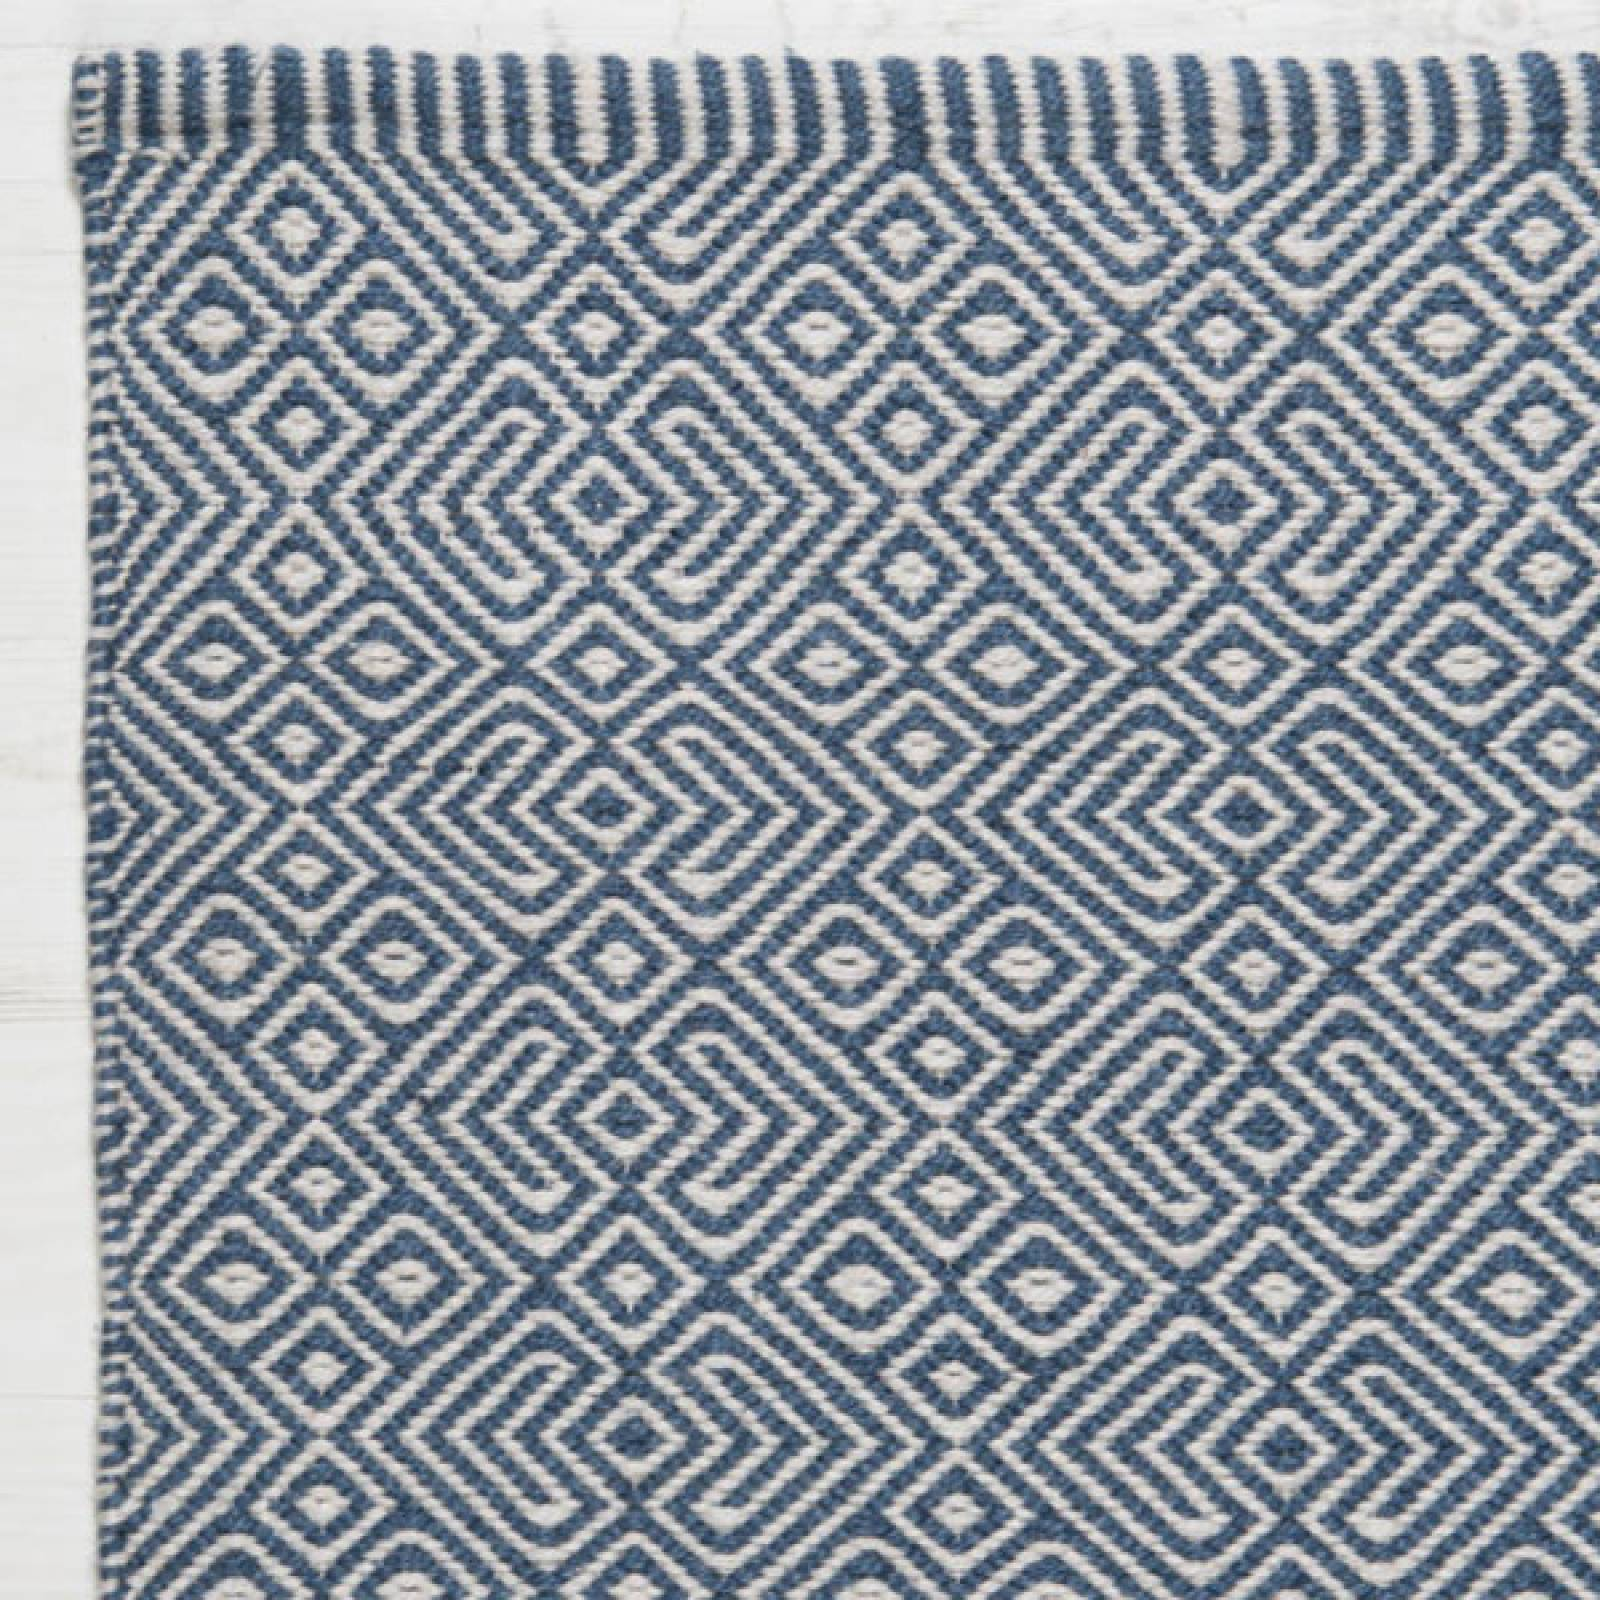 Provence NAVY 180 x 120cm Recycled Bottle Rug